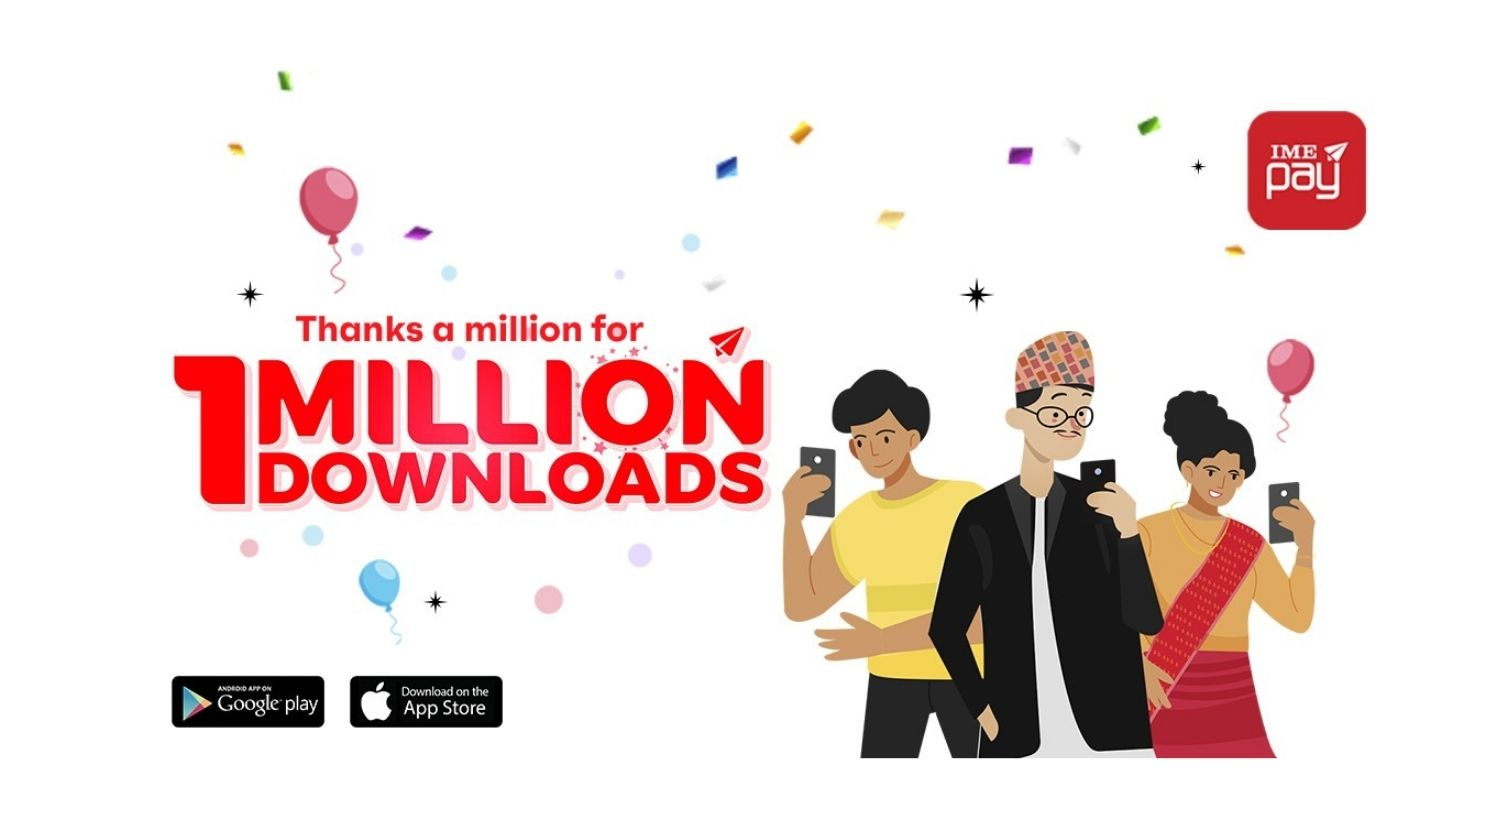 IME pay App download 1 million